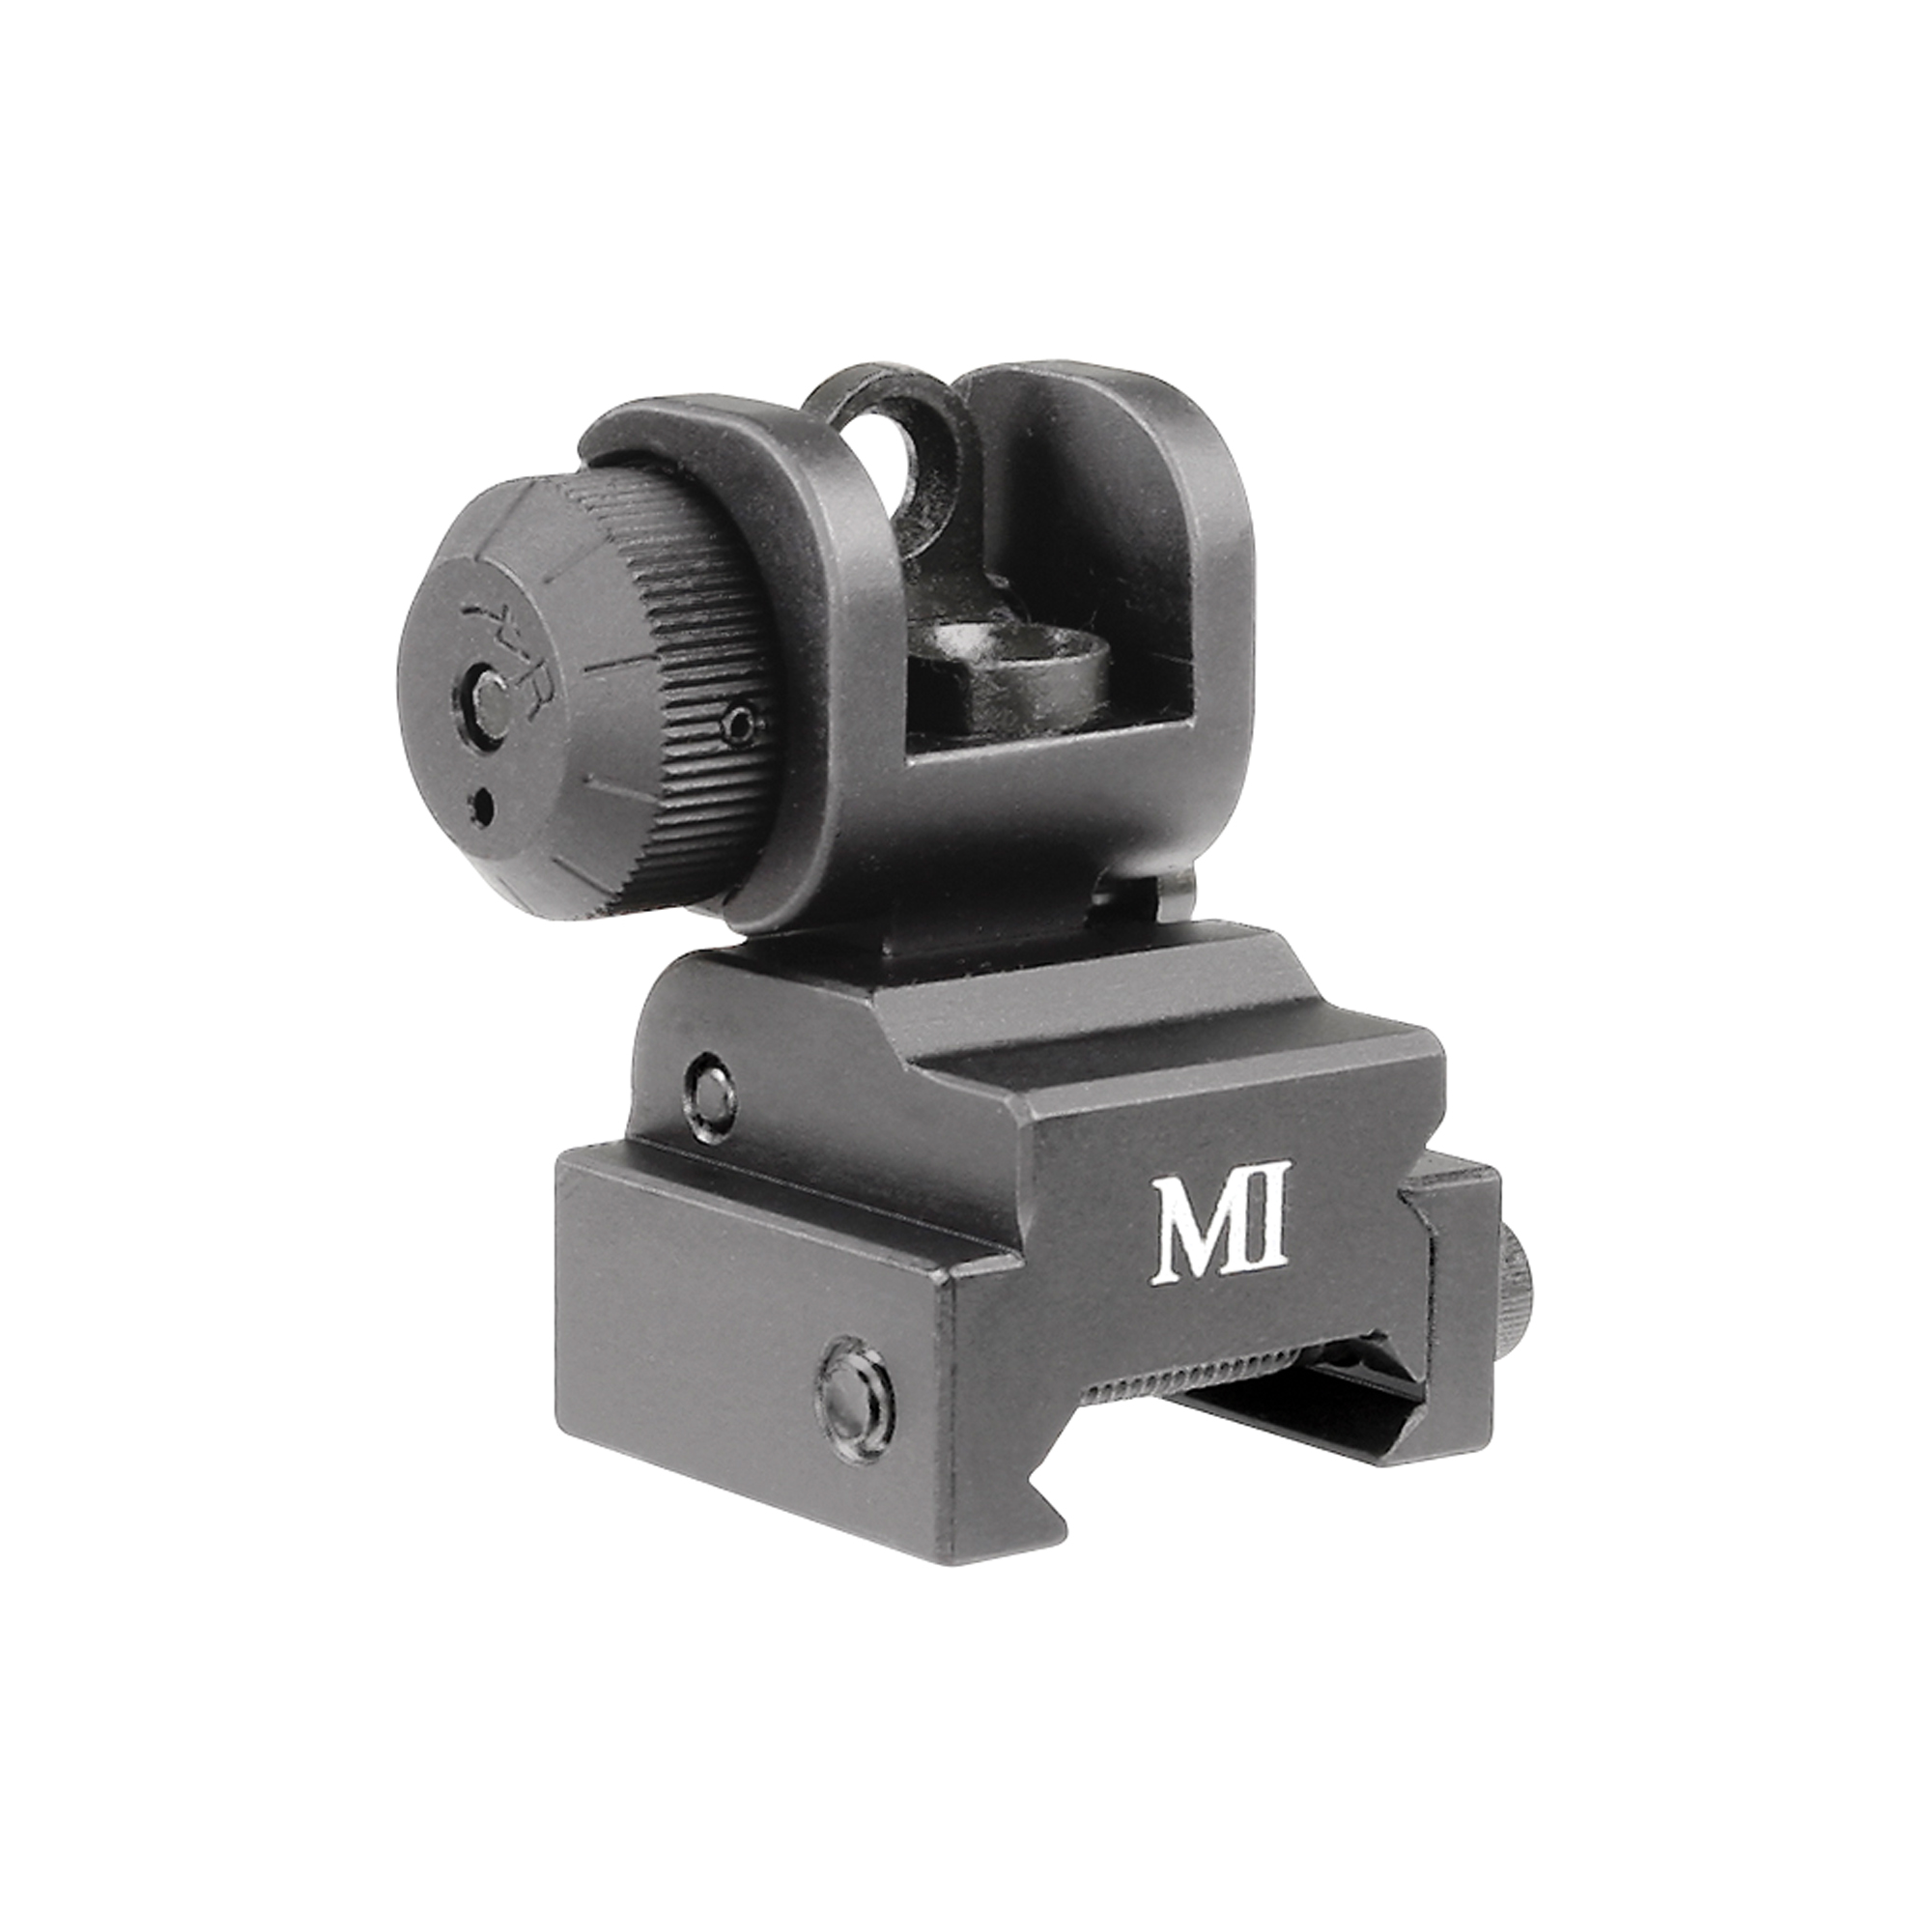 Midwest Industries ERS (Emergency Rear Sight) Flip-Up Rear Sight. All of Midwest Industries products focus on providing top notch quality and reliability you expect from products made in the U.S.A. Backed by Midwest Industries Lifetime Warranty.